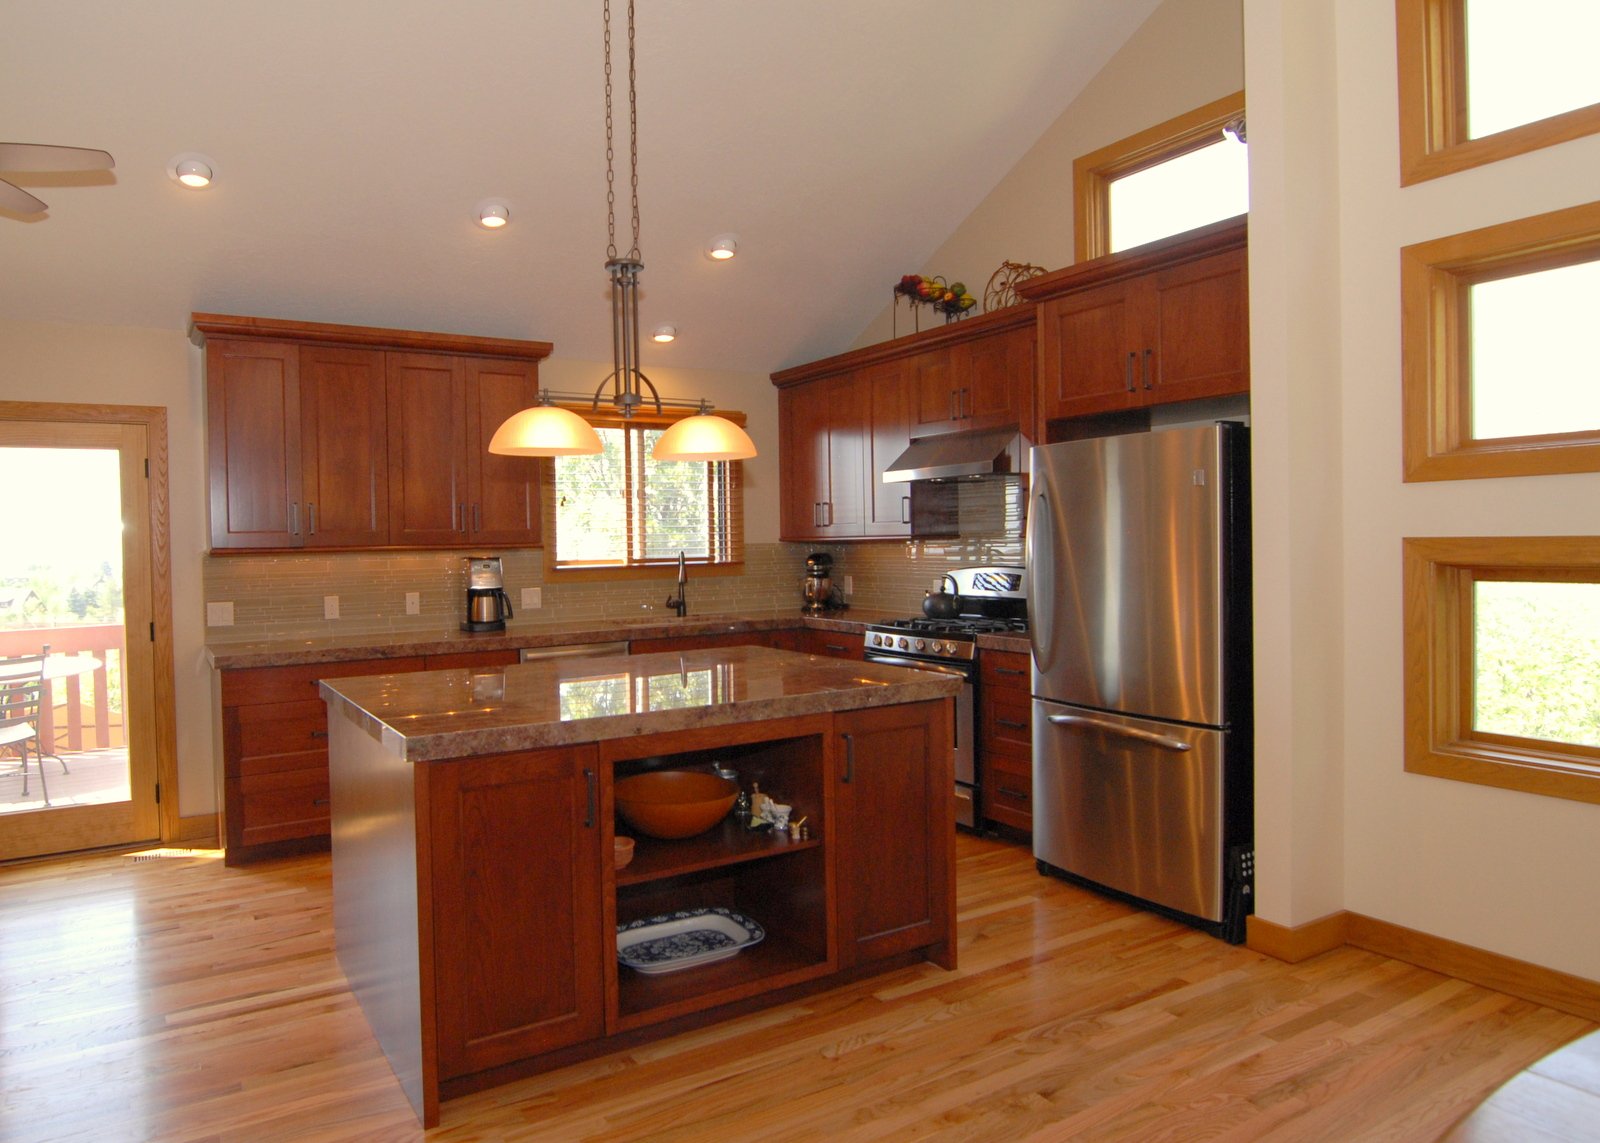 Remodel My Kitchen How To Build Outdoor Enzy Living Recent Before And After